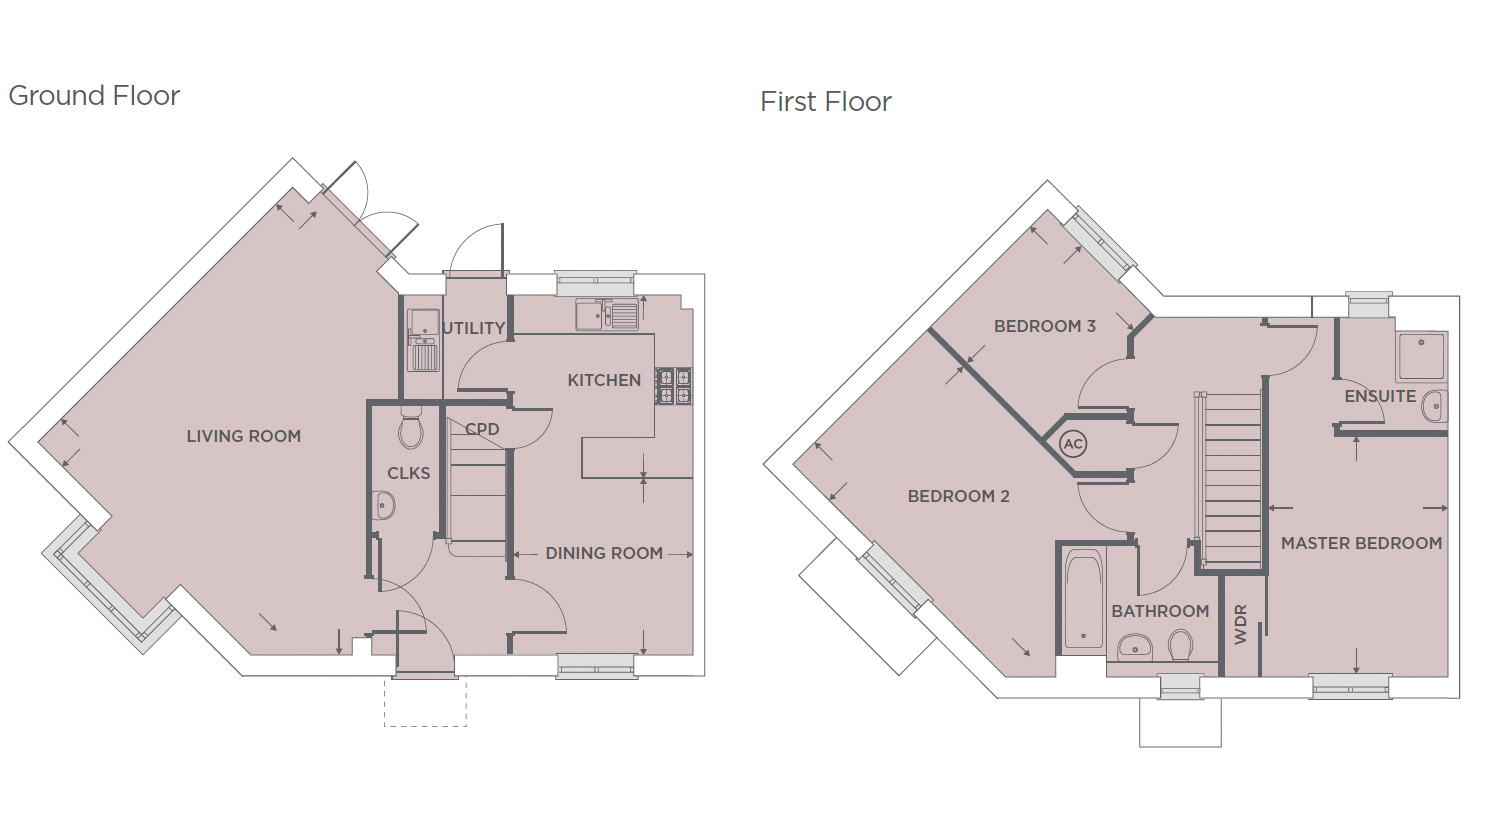 Coming Soon! Our brand new phase at Kingsfield Park! Floor plan